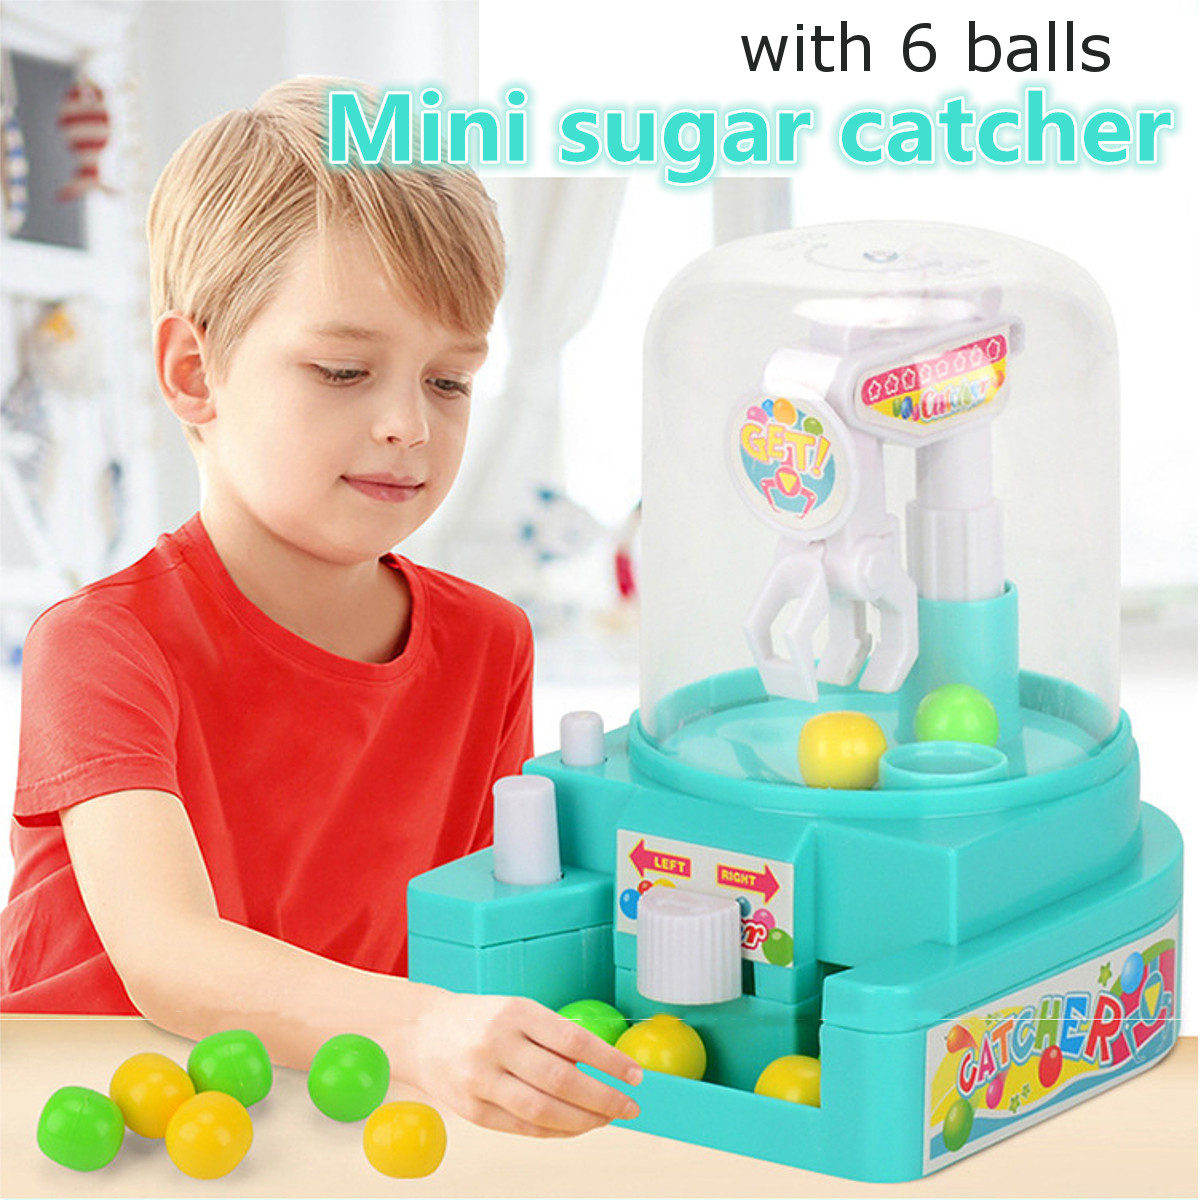 Mini Candy Grabber Catcher Mechanical Arm Small Ball Crane Machine Handheld Claw Arcade Crane Catch Toy For Kids Children